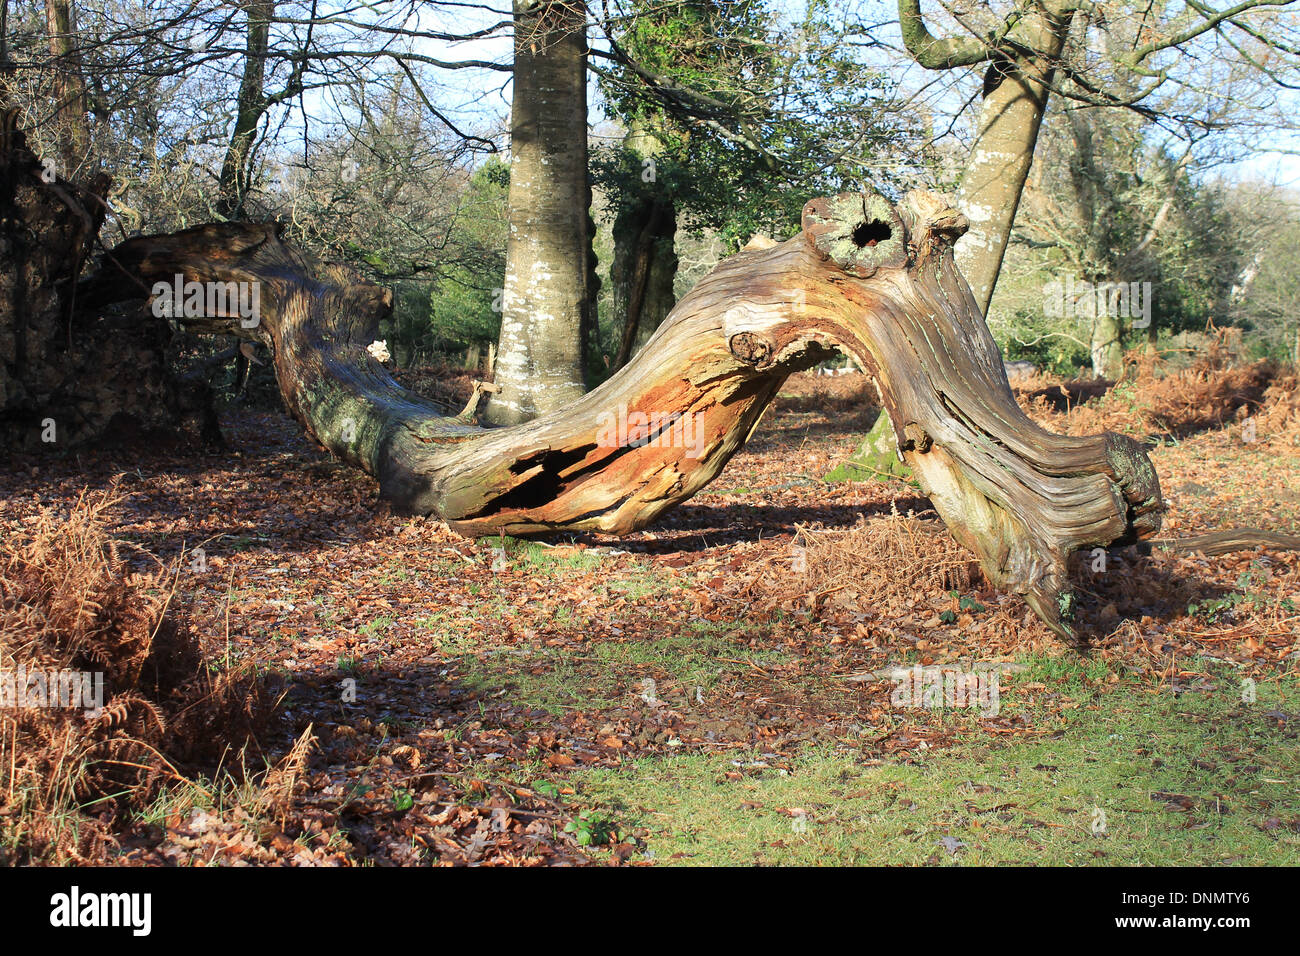 Fallen tree making a beautiful natural sculpture of a sinuous dragon in the New Forest National Park, Hampshire, - Stock Image